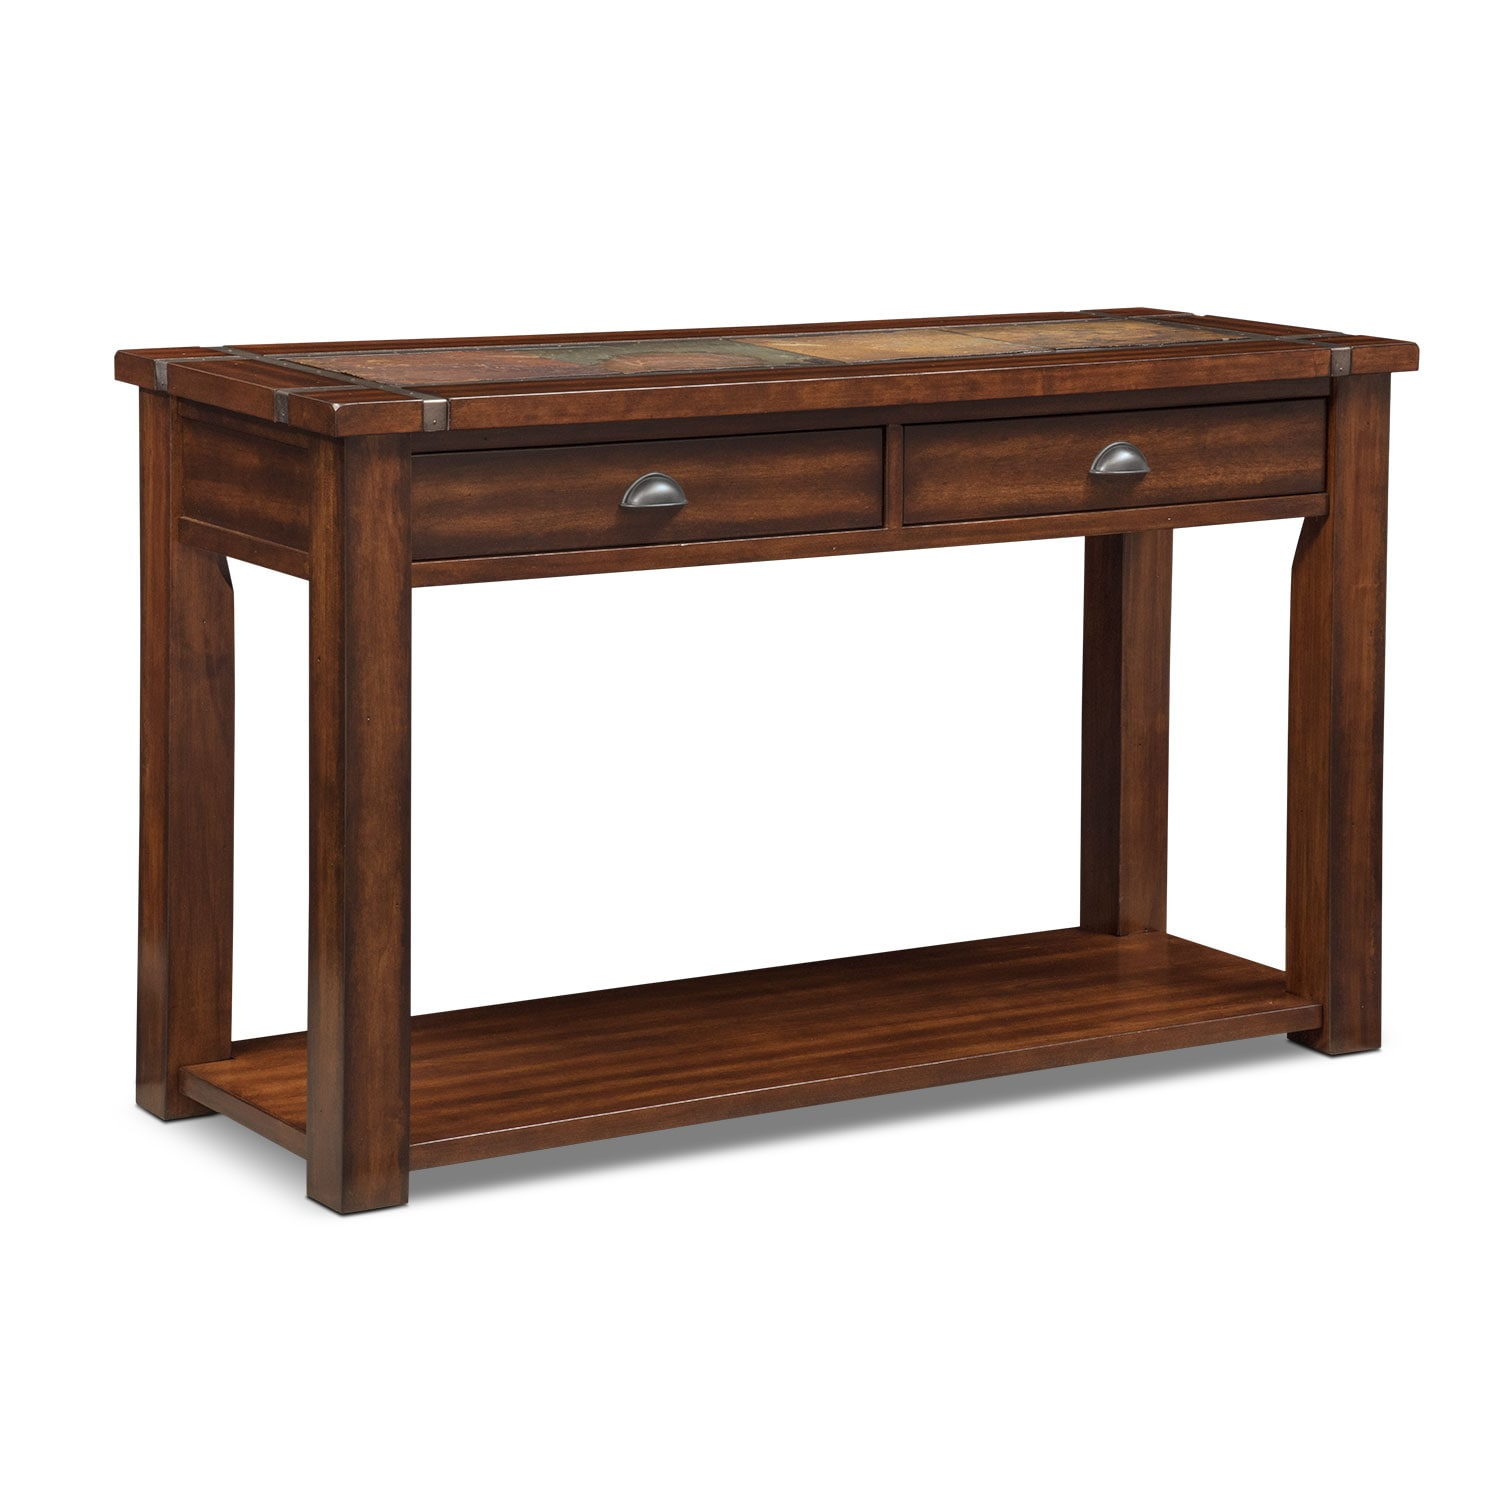 slate ridge sofa table cherry value city furniture and mattresses rh valuecityfurniture com cherry sofa table plans traditional cherry sofa table